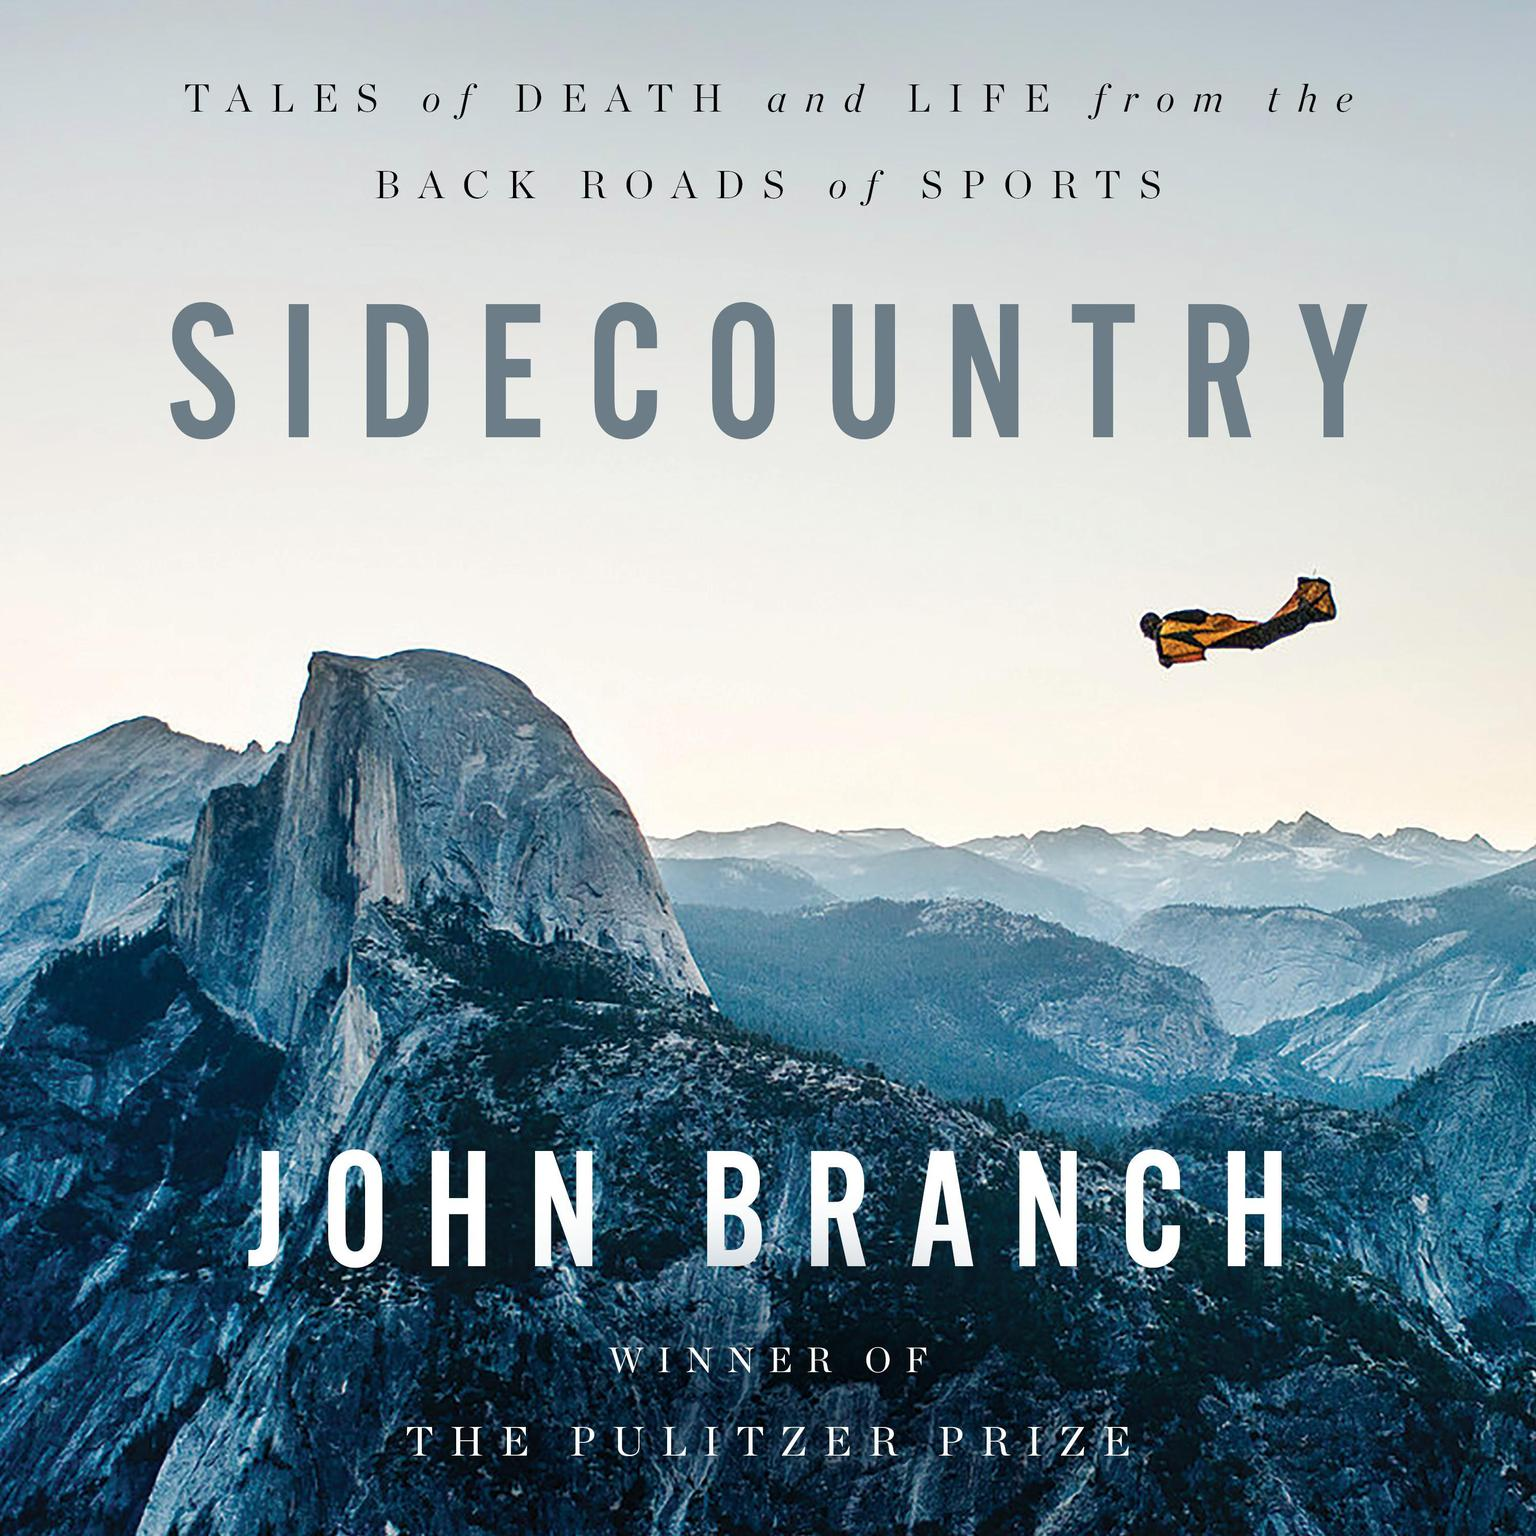 Sidecountry: Tales of Death and Life from the Back Roads of Sports Audiobook, by John Branch